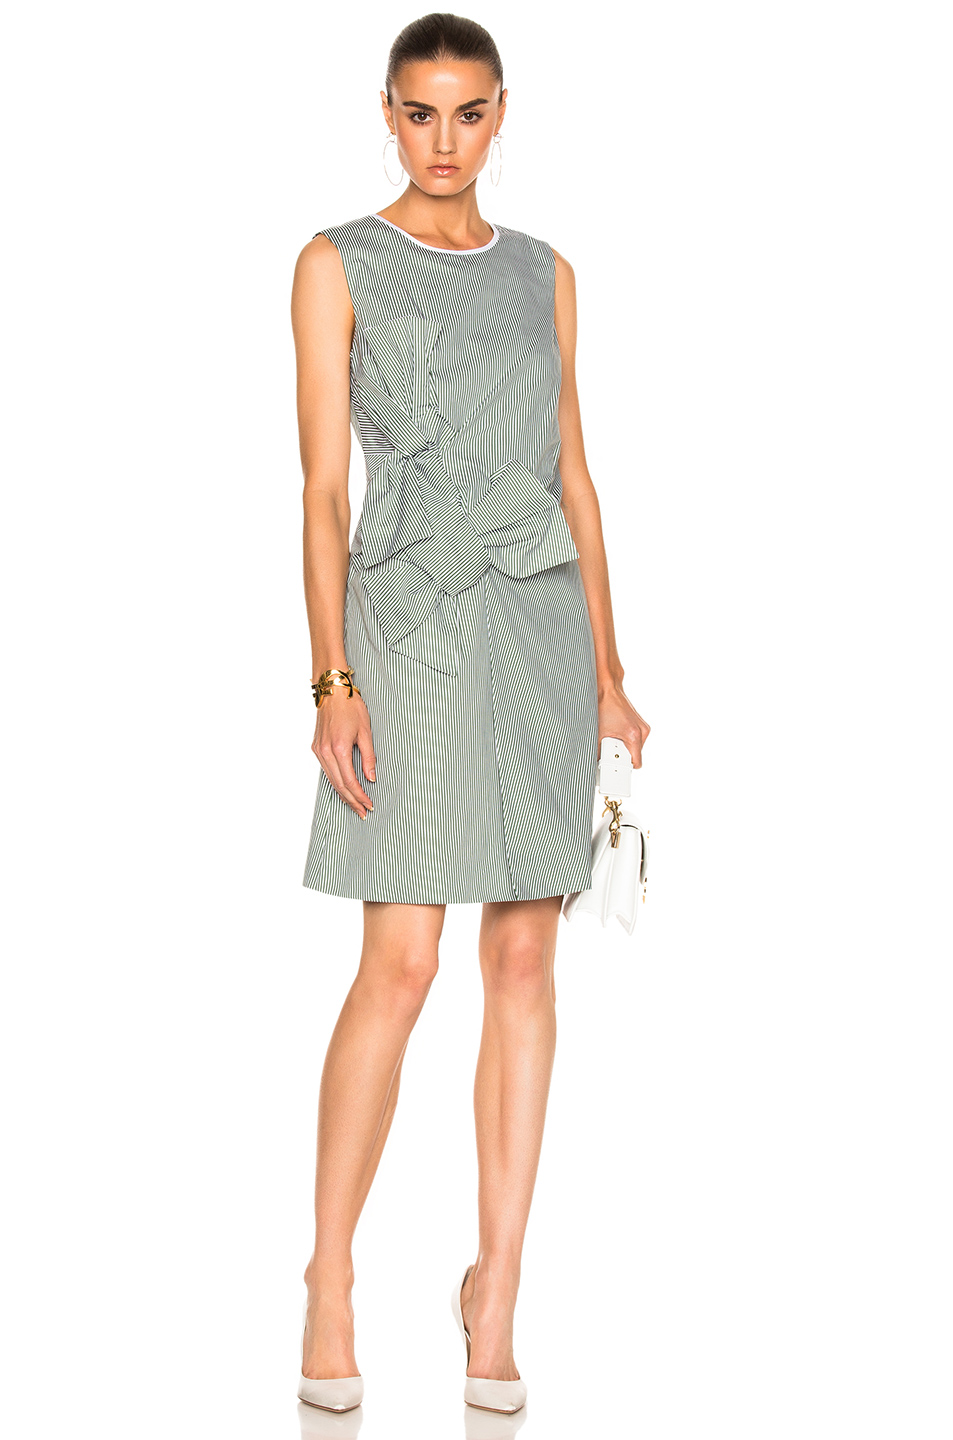 Victoria Victoria Beckham Double Knot Dress in Green,Stripes,White